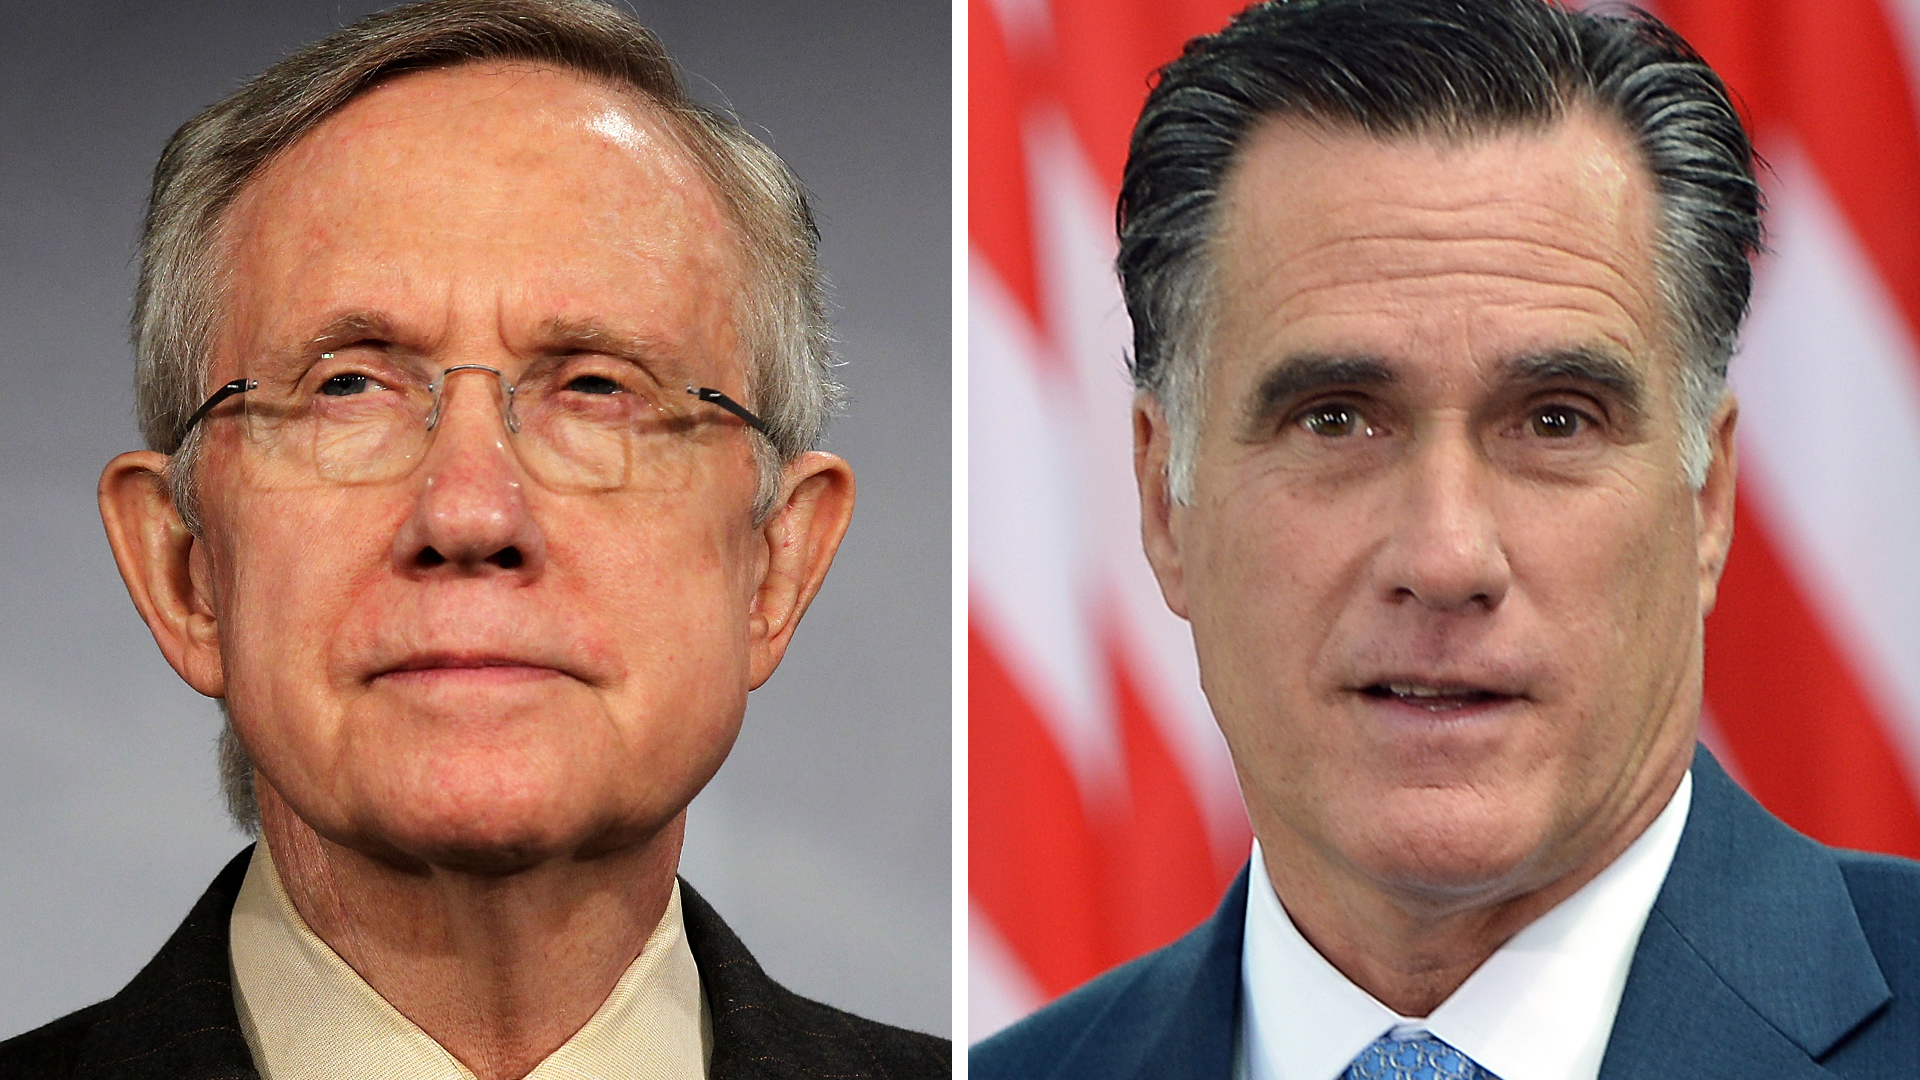 Romney vs. Reid over tax returns, who is winning? OutFront Political Strike Team weighs in at 7p ET